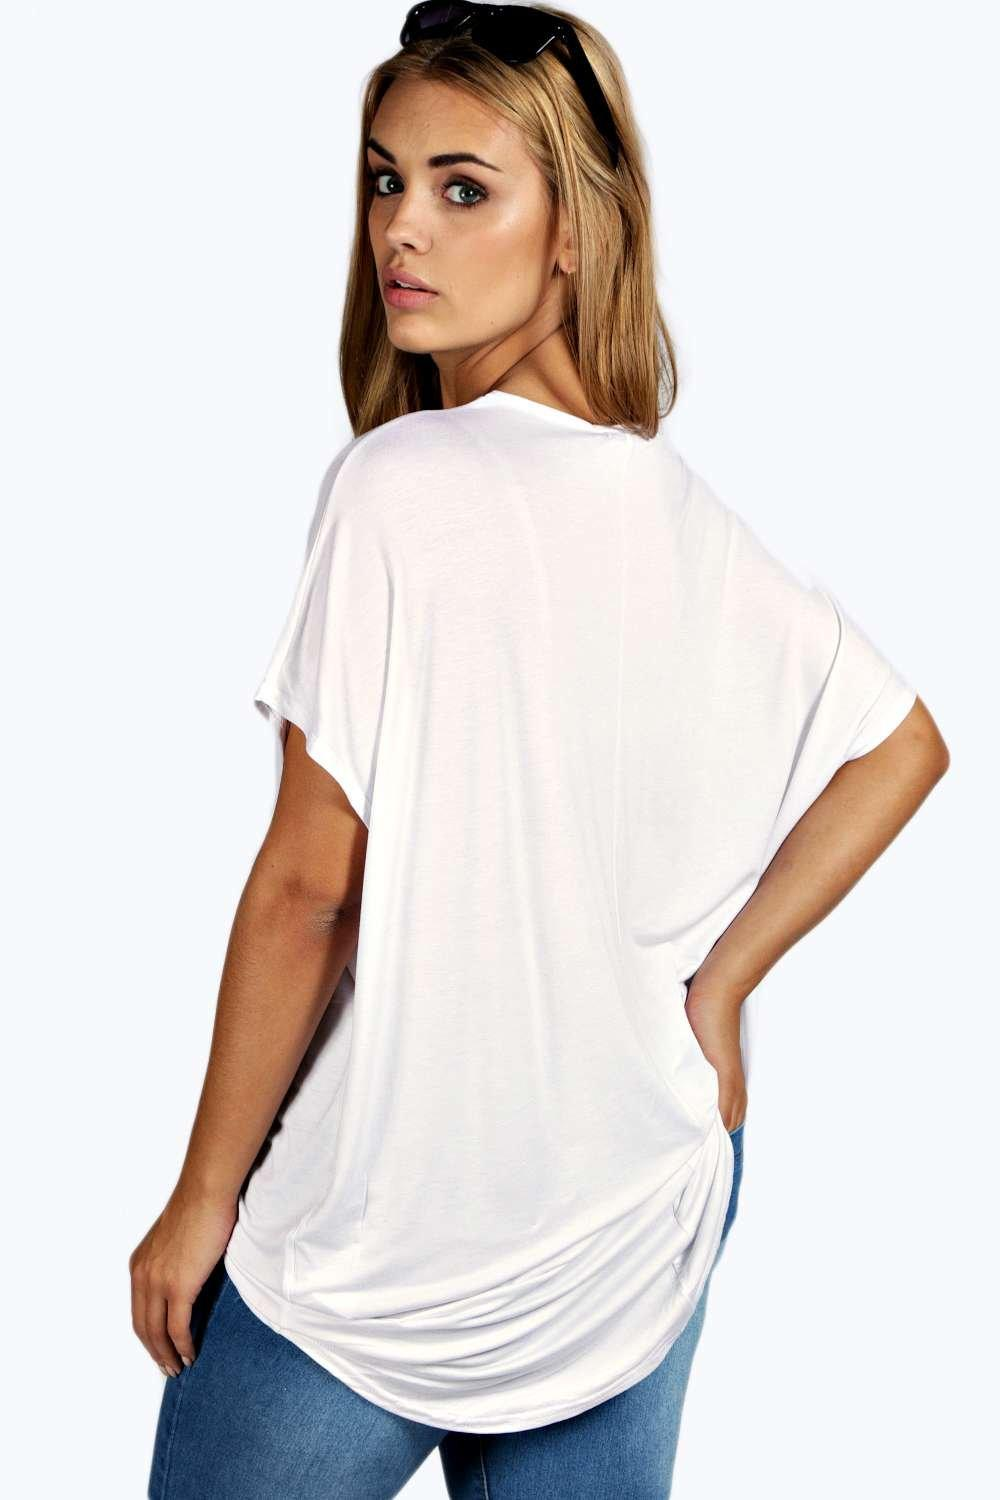 Today's best basic tees women offers: Find the best basic tees women coupons and deals from the most popular Women's T-Shirt stores for discounts. bigframenetwork.ga provides exclusive offers from top brands on drop tees, wholesale mens tees and so on.